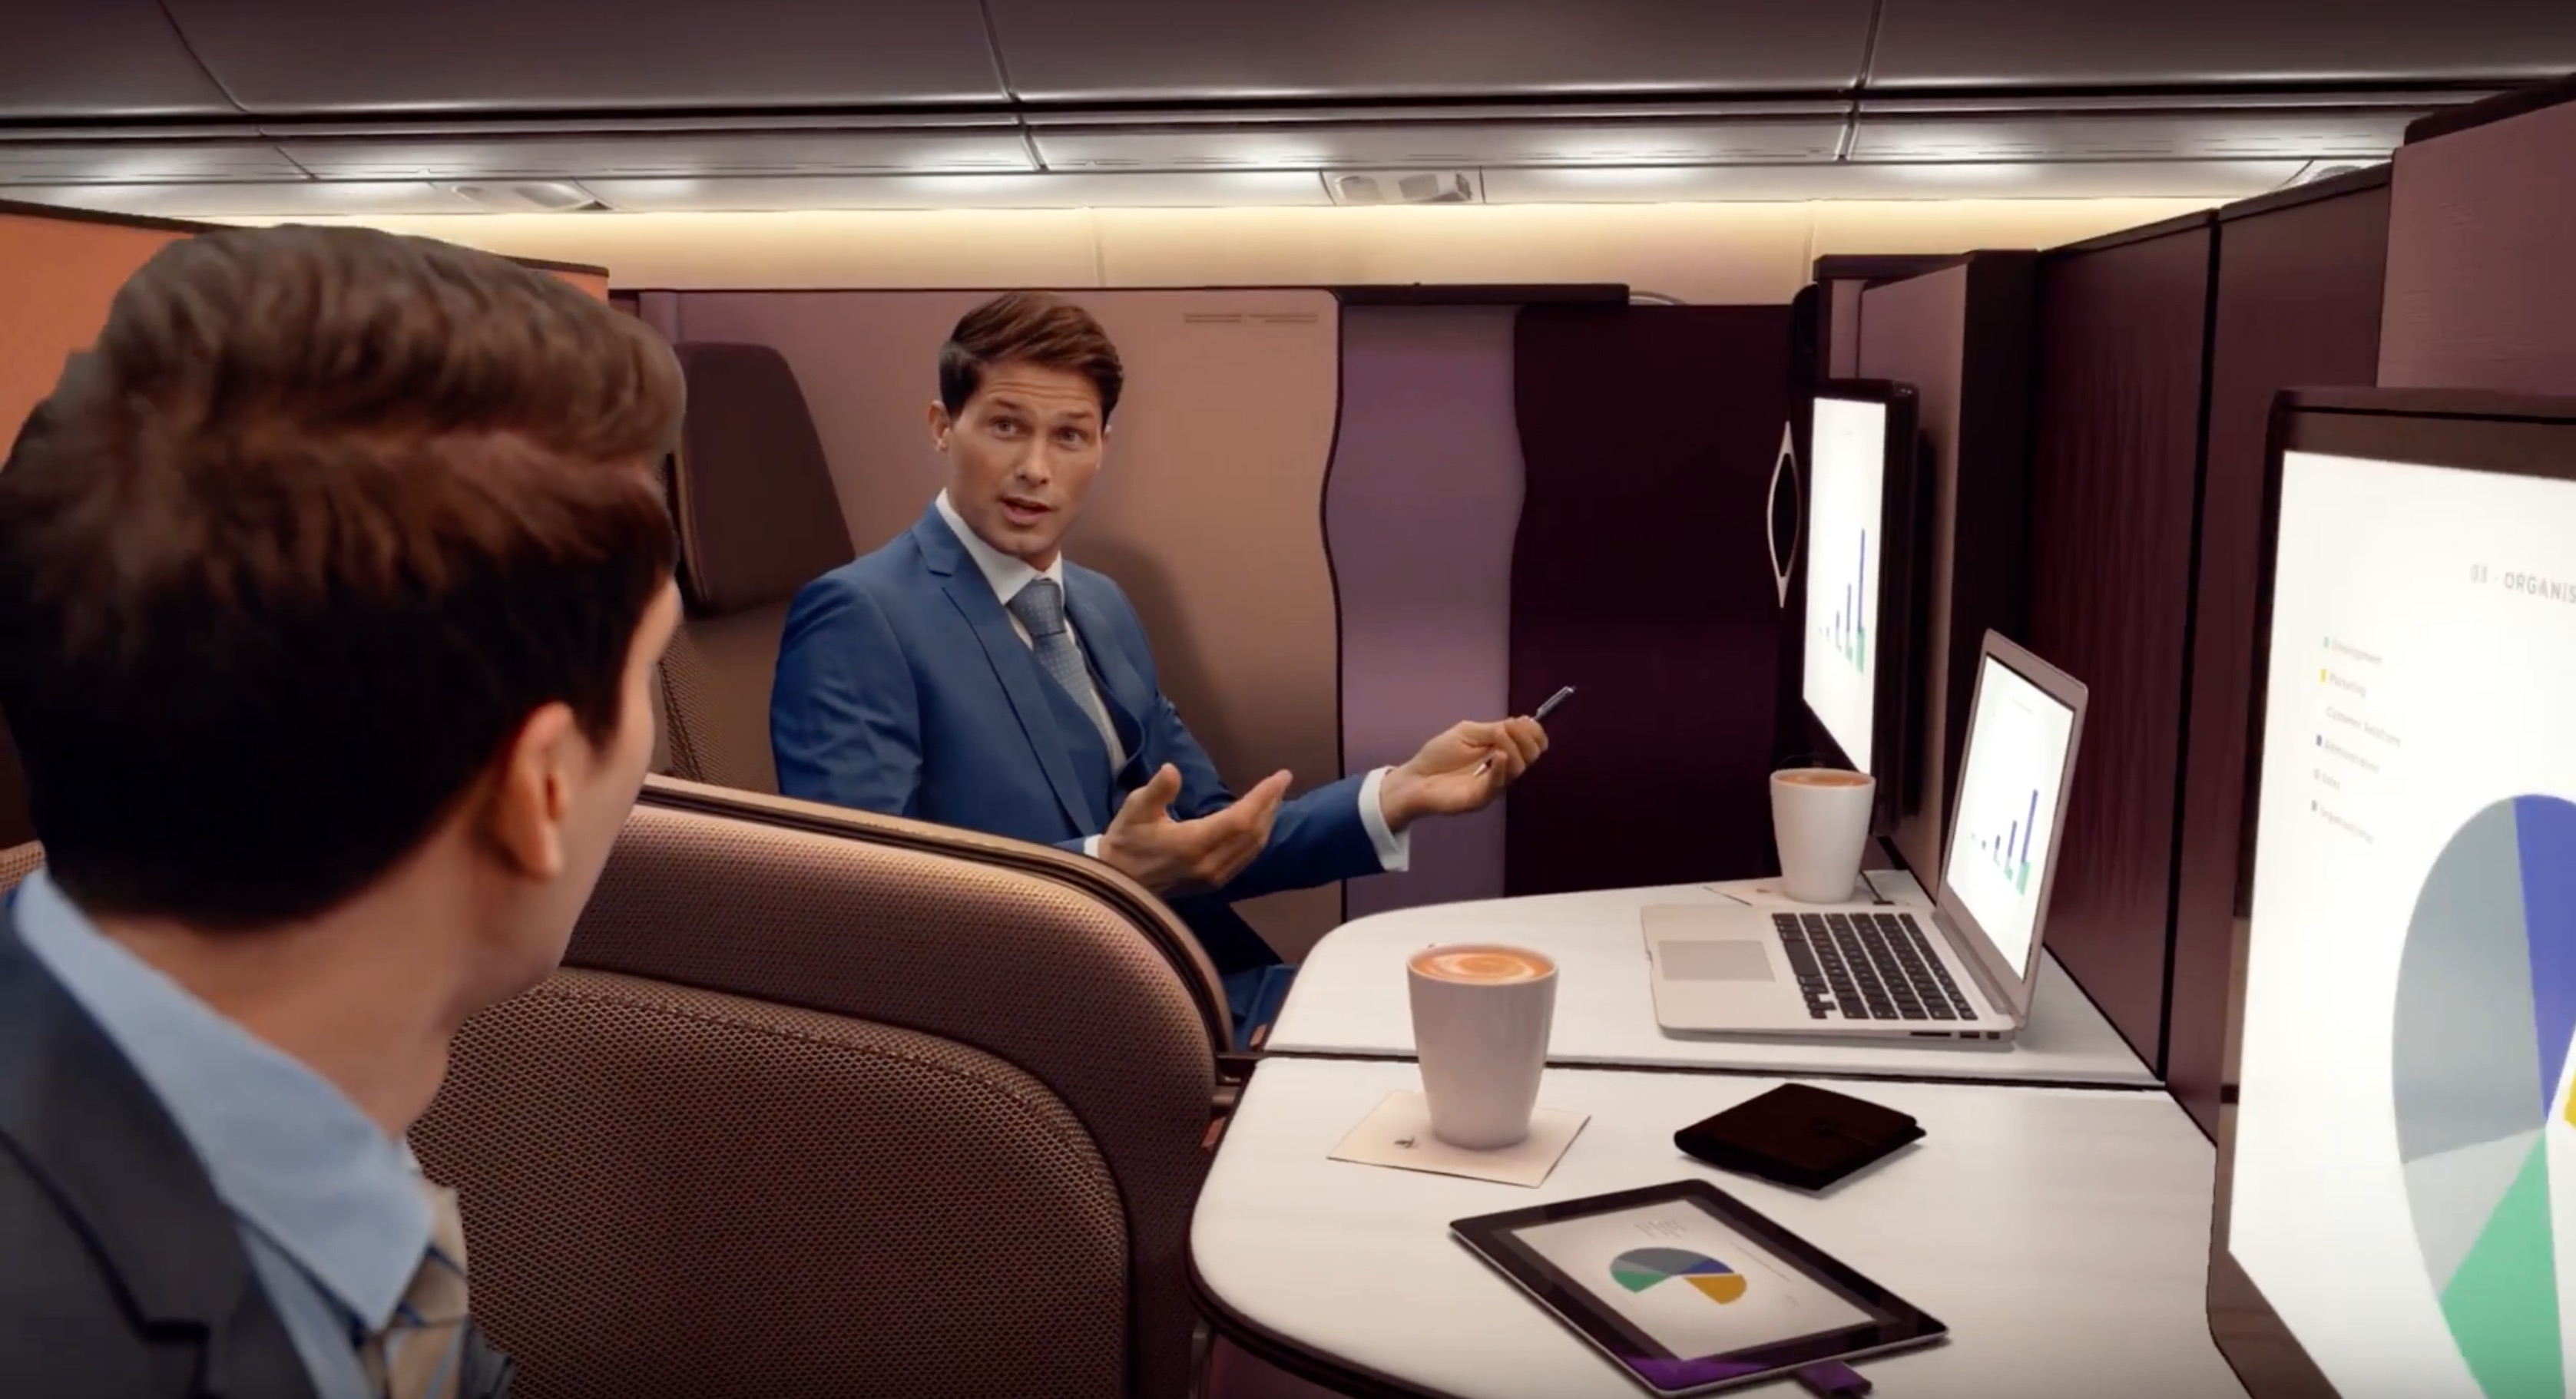 Qatar Airways Takes Business Class To A Whole New Level With 'QSuite'